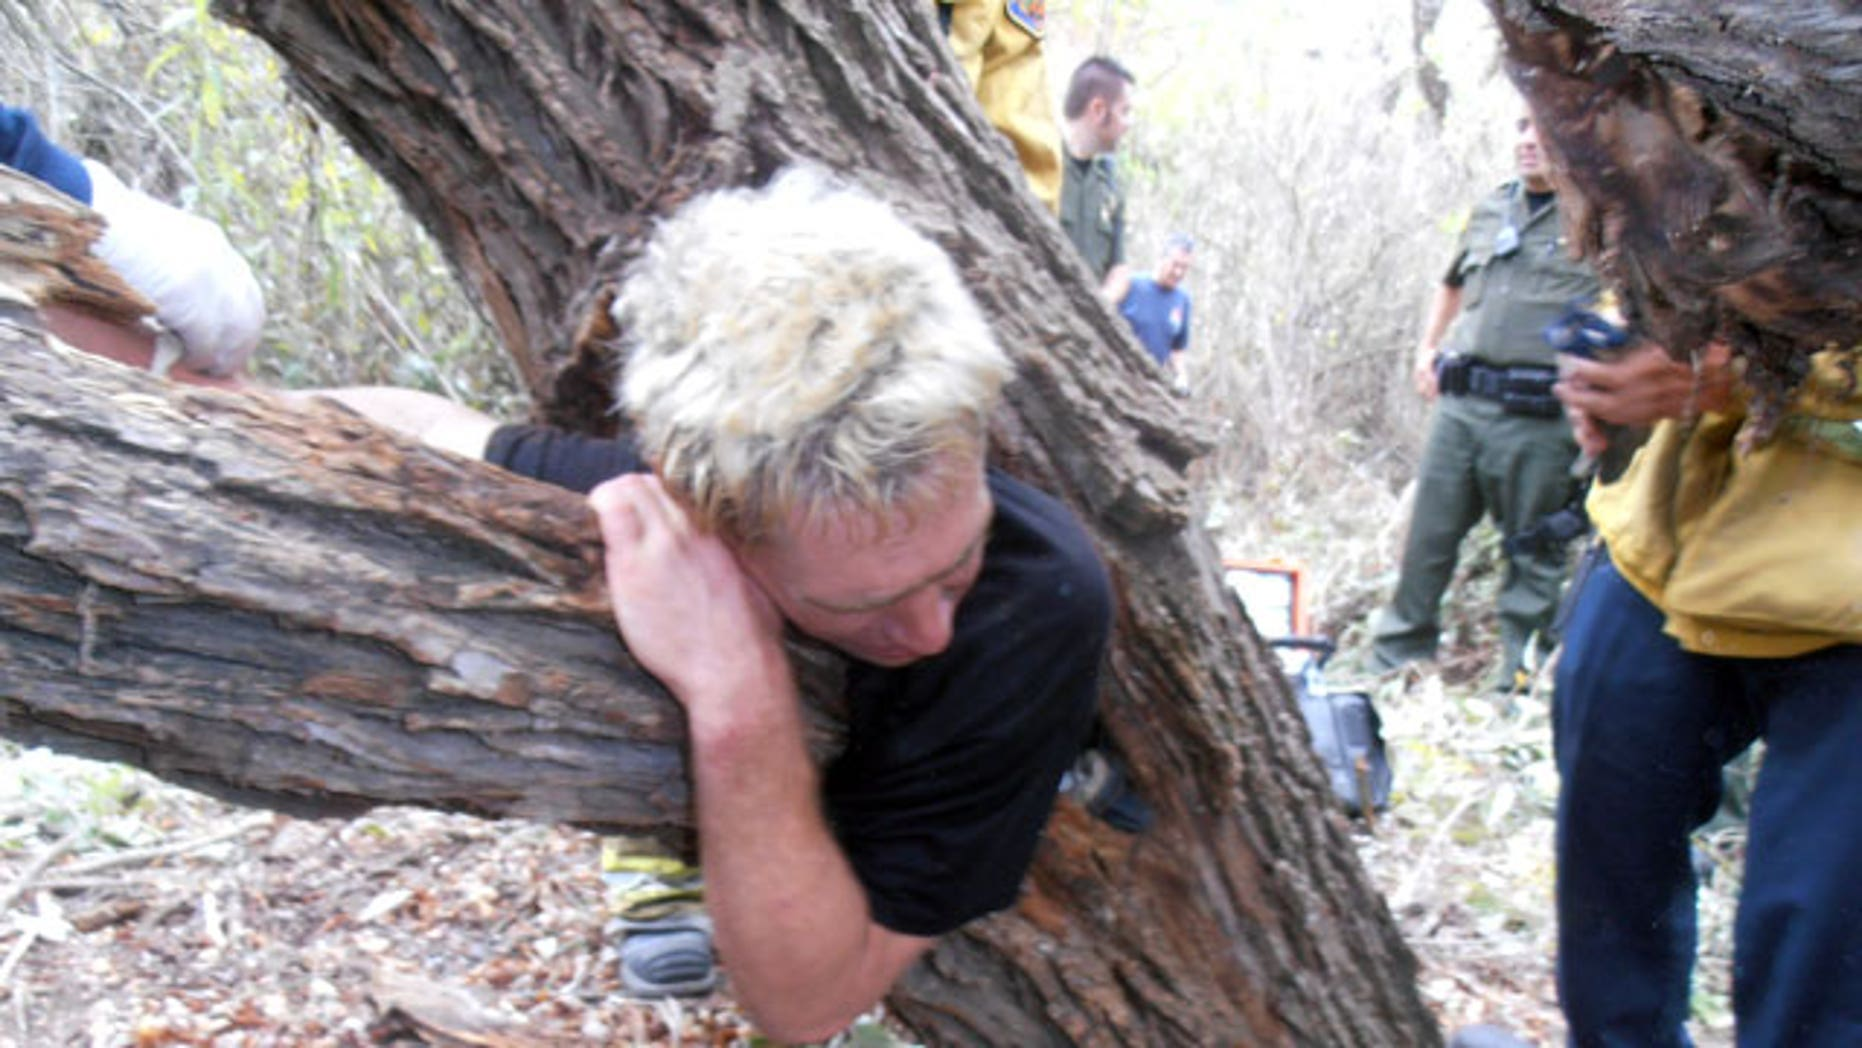 October 25, 2011: This image provided by the Orange County Fire Authority shows officials and rescue personnel around a man who became stuck in a tree  in Laguna Hills, Calif.